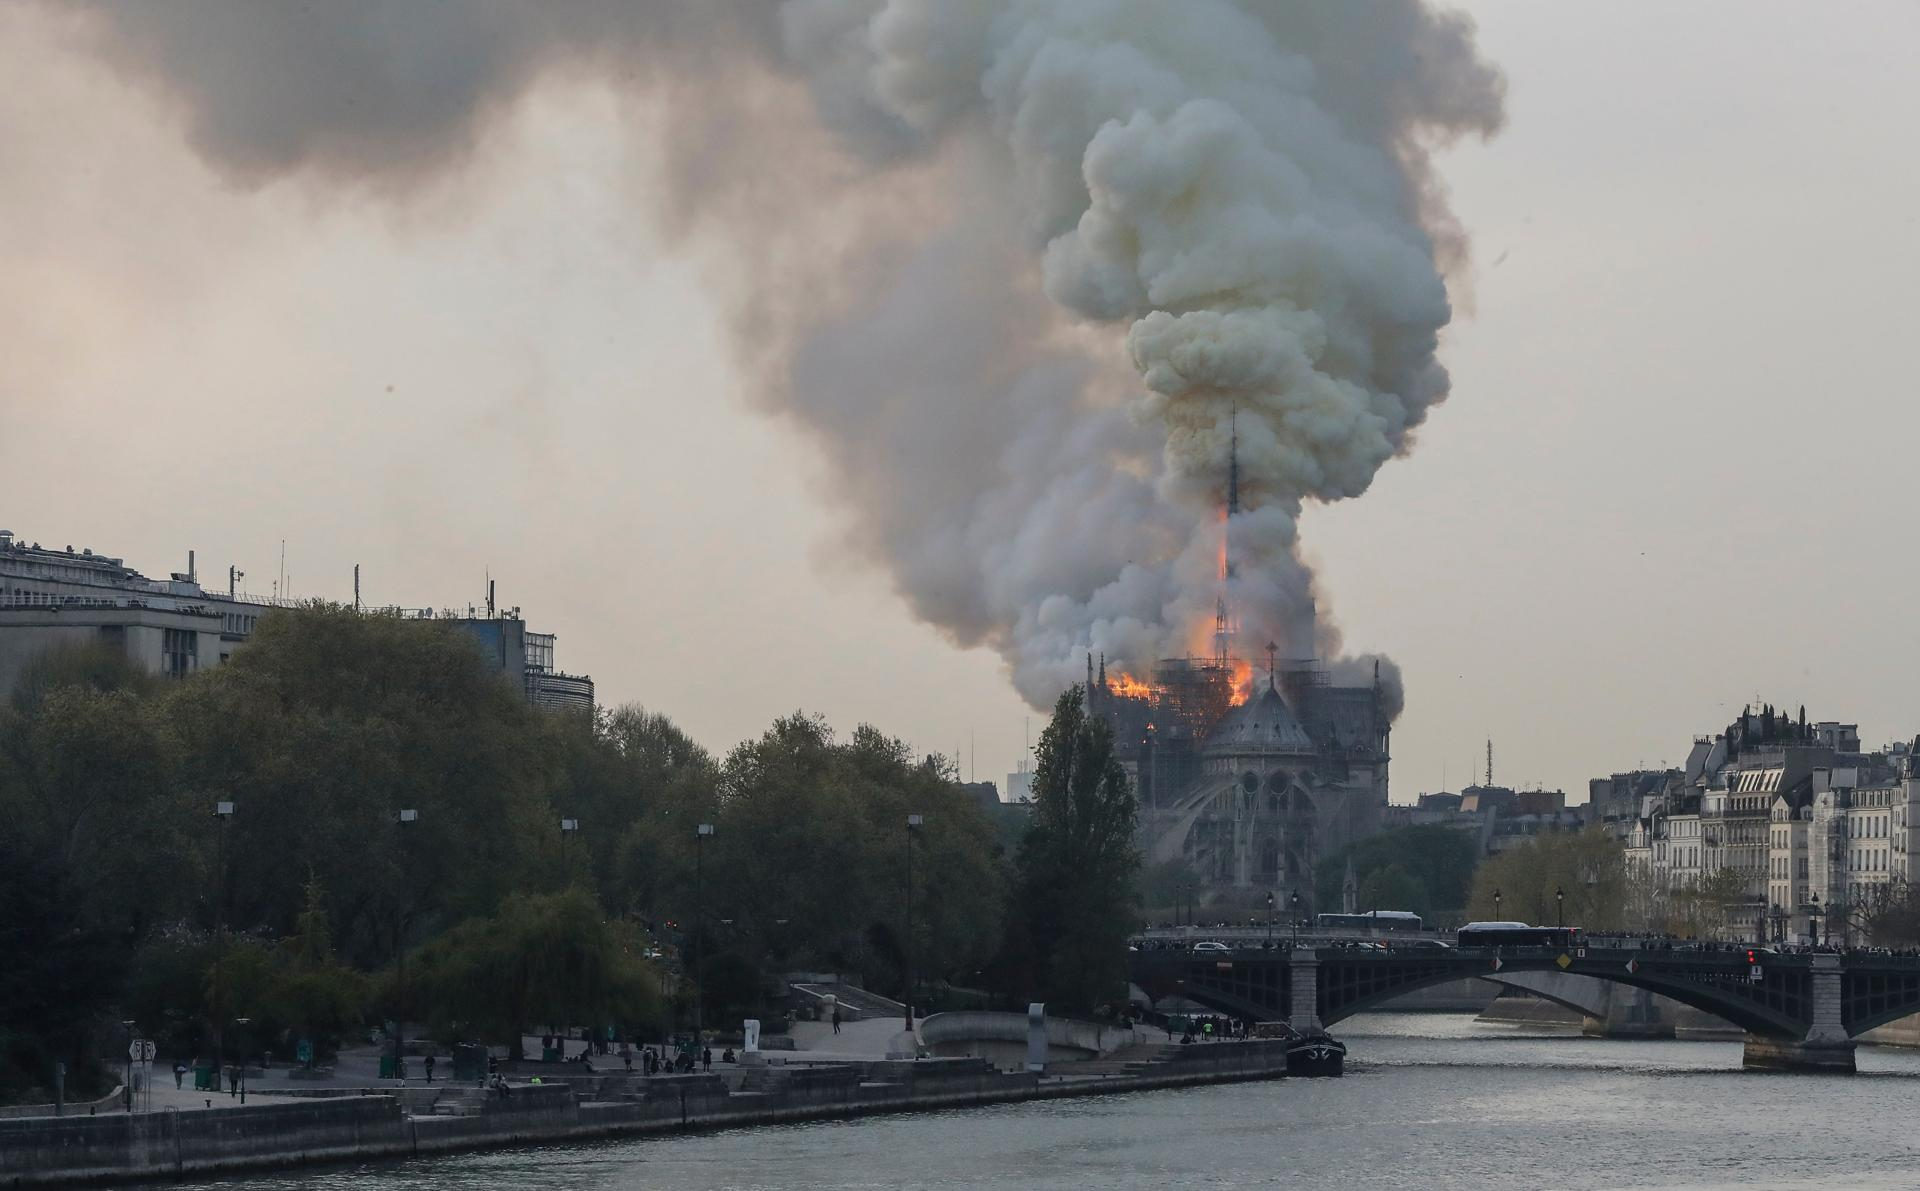 TOPSHOT - Smokes ascends as flames rise during a fire at the landmark Notre Dame Cathedral in central Paris on April 15, 2019 afternoon, potentially involving renovation works being carried out at the site, the fire service said. (Photo by FRANCOIS GUILLOT / AFP)FRANCOIS GUILLOT/AFP/Getty Images